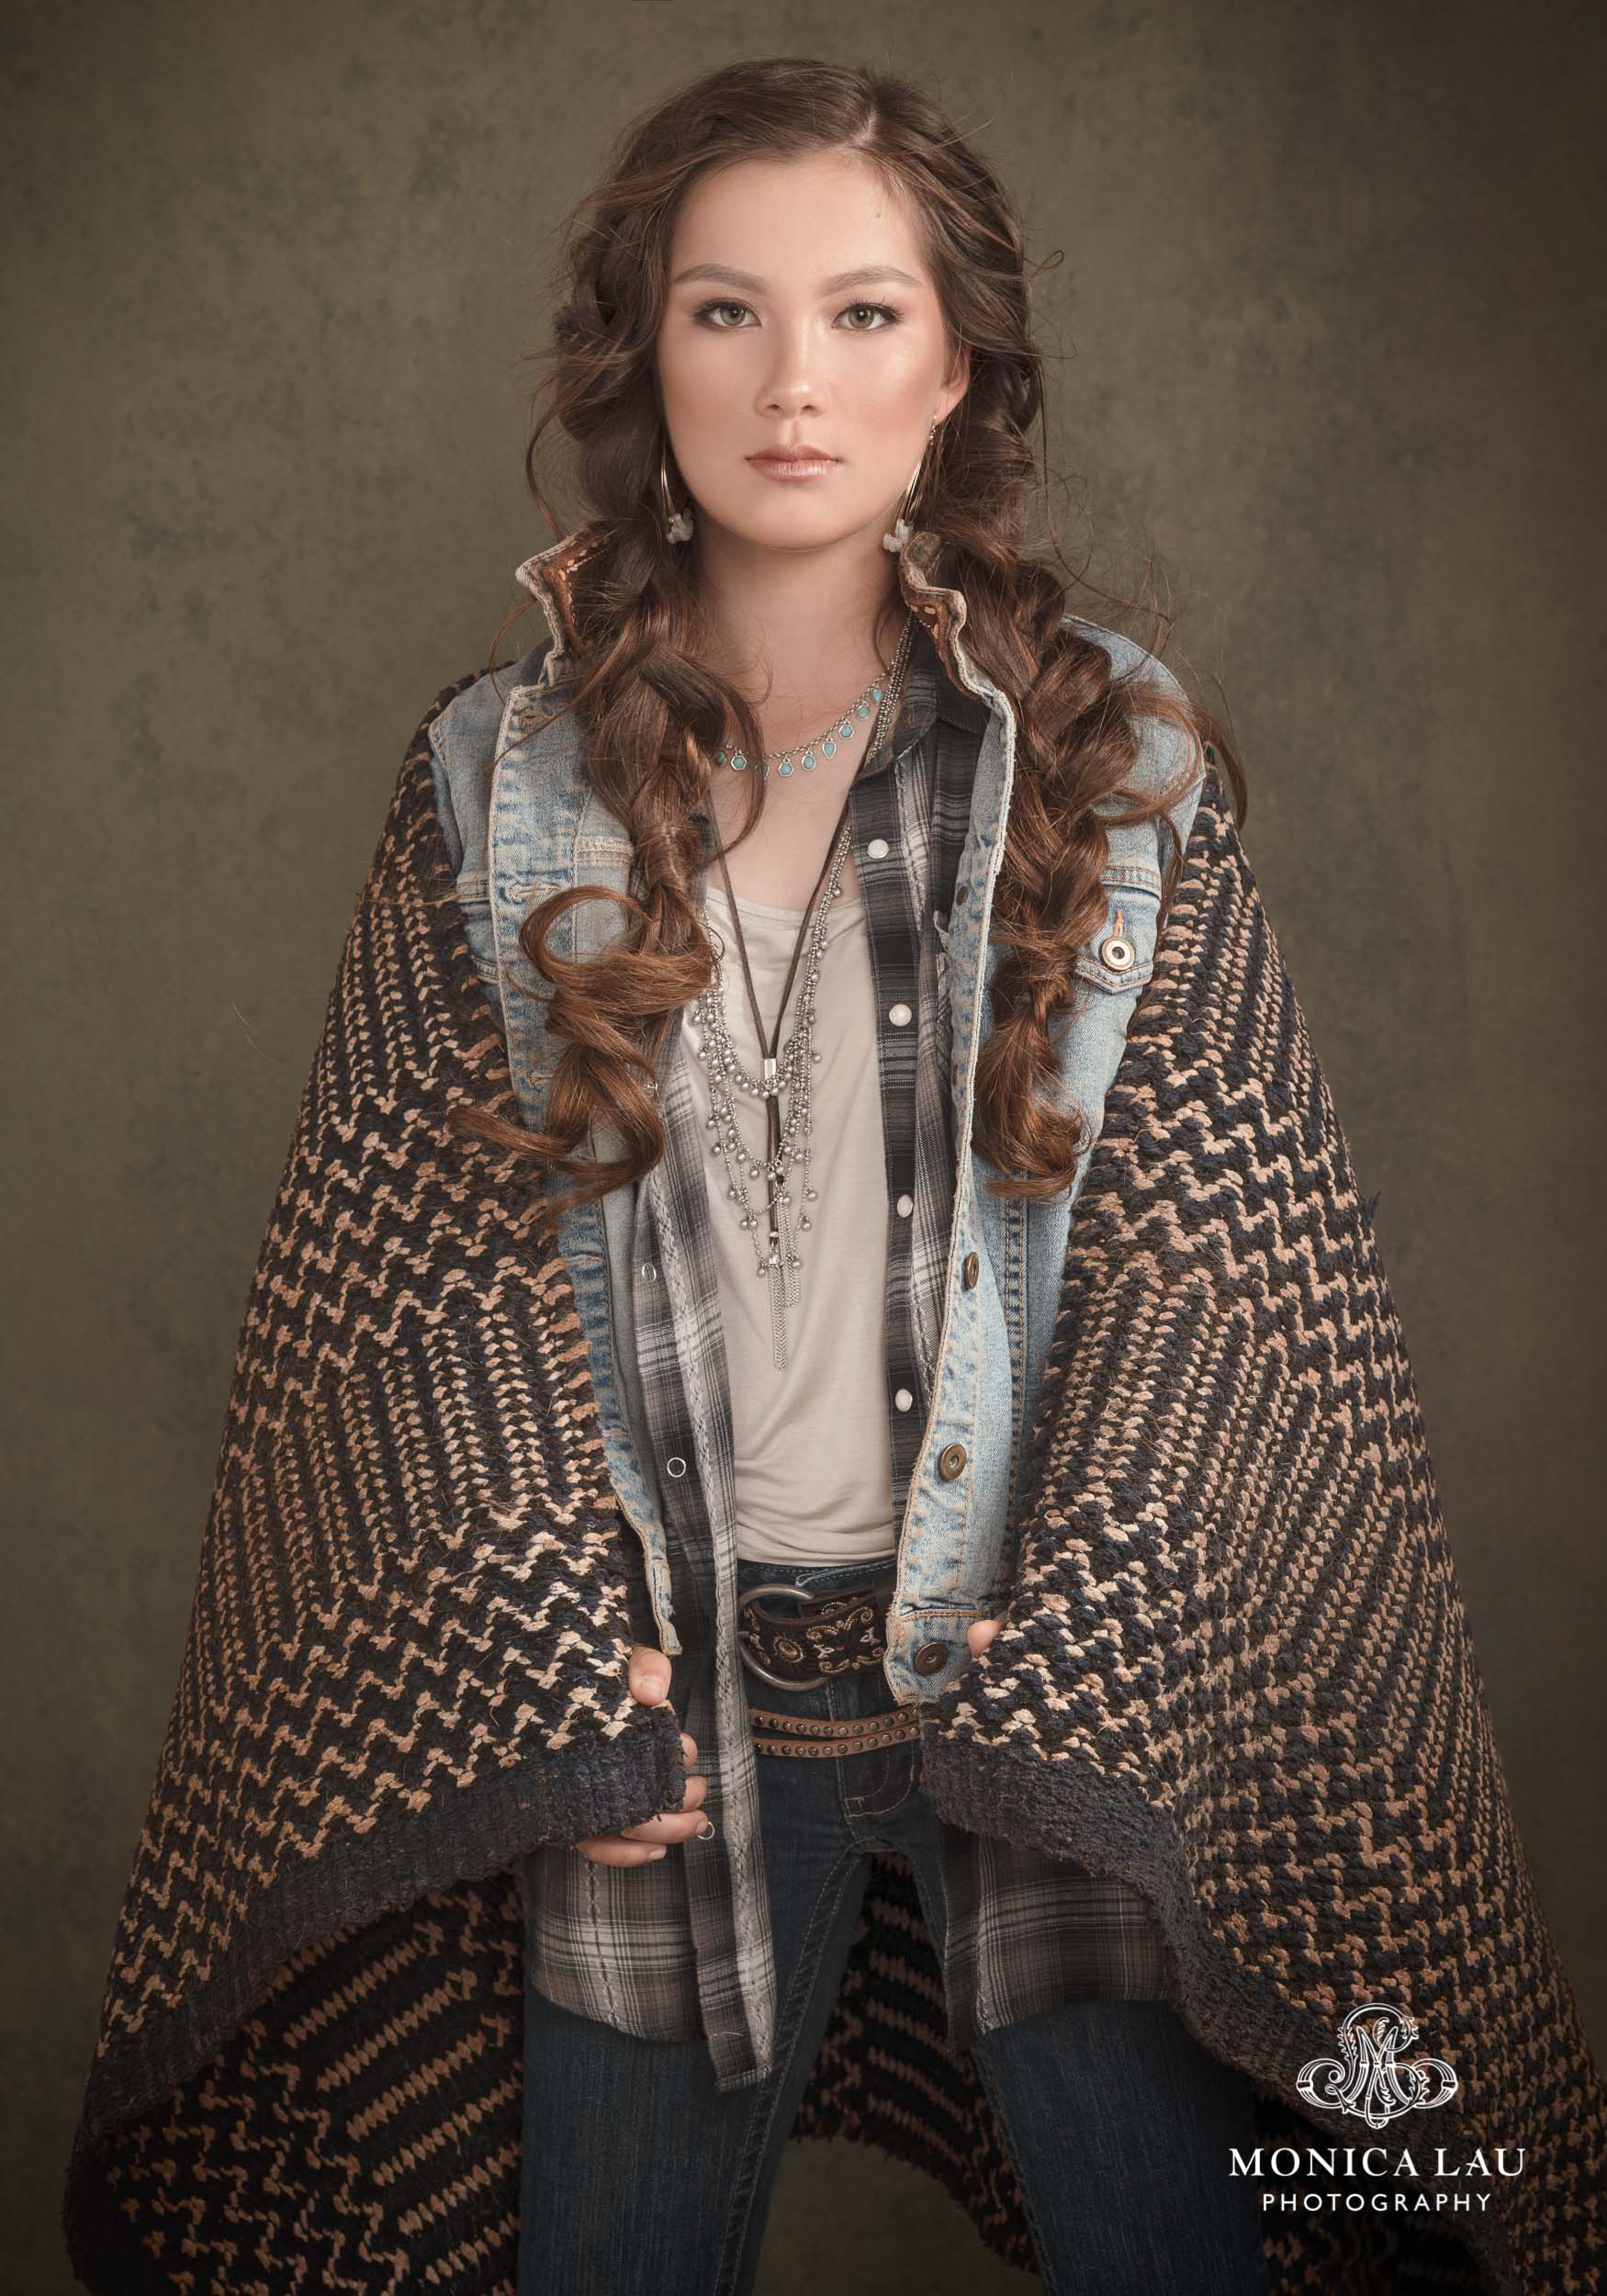 19MonicaLauPhotography-ShelbyWallenCowgirlPortraits0693-2-2.jpg